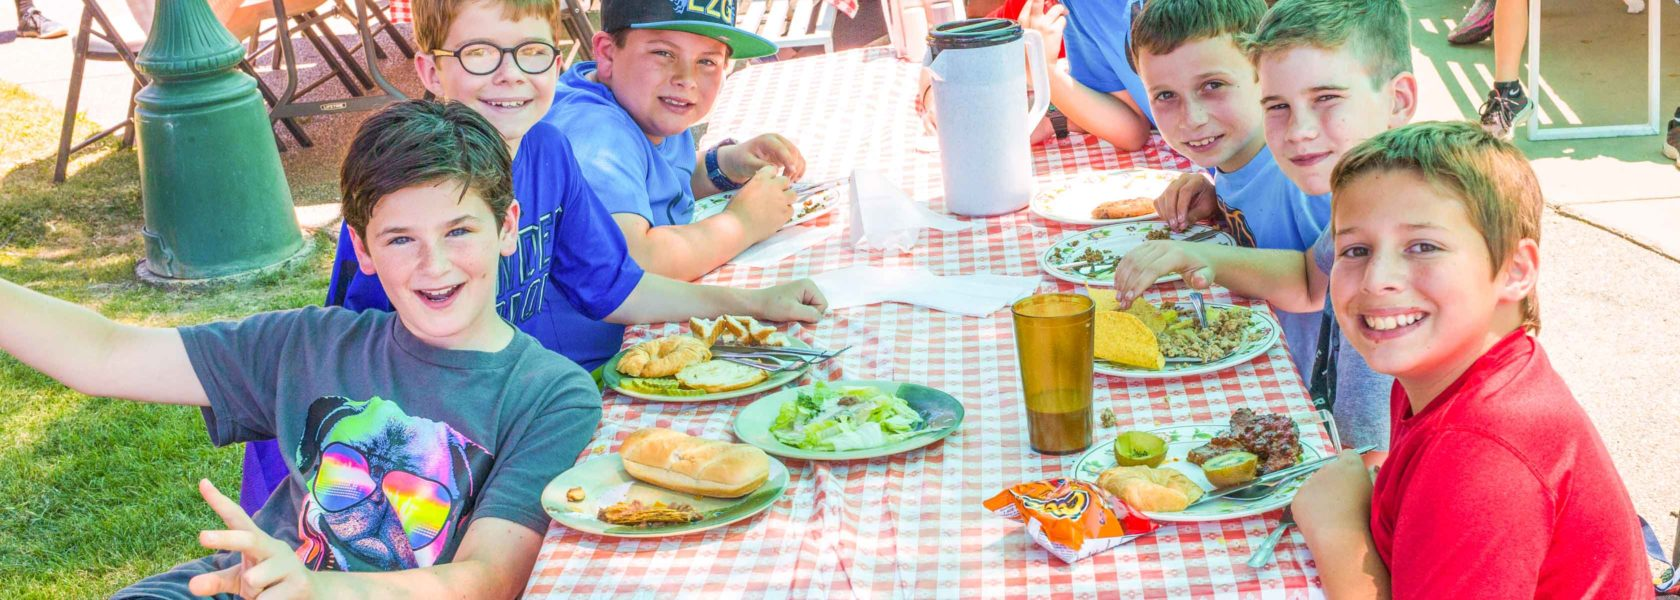 Campers sitting at a picnic table eating food.